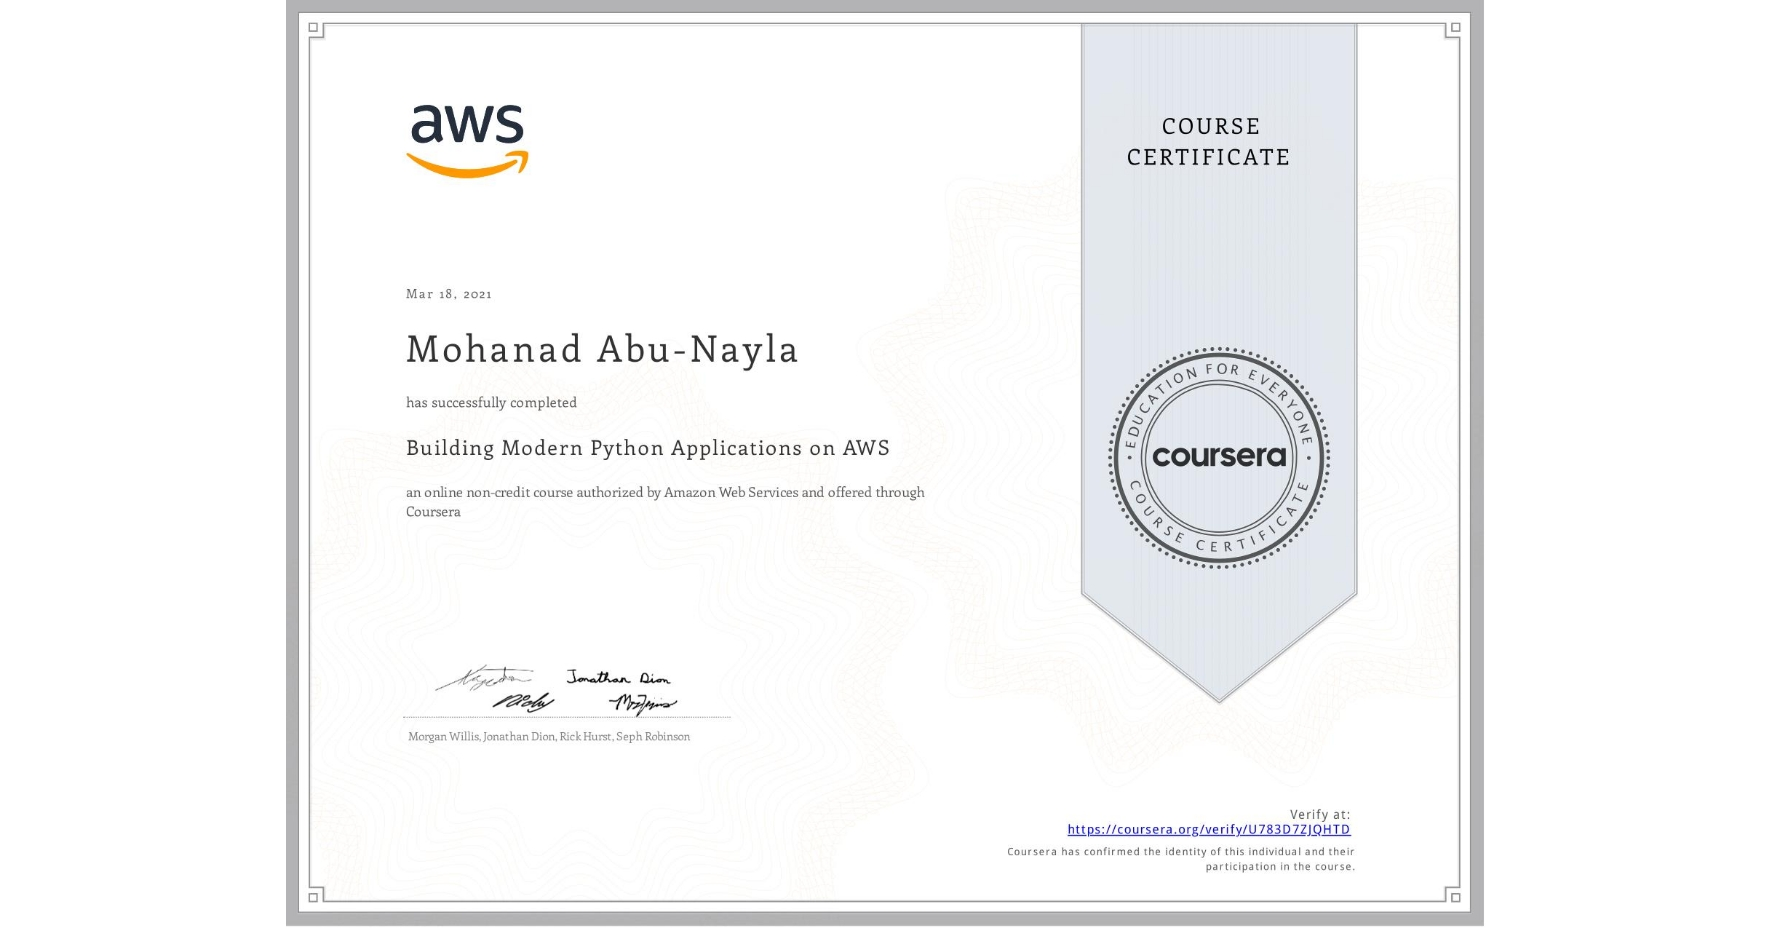 View certificate for Mohanad Abu-Nayla, Building Modern Python Applications on AWS, an online non-credit course authorized by Amazon Web Services and offered through Coursera